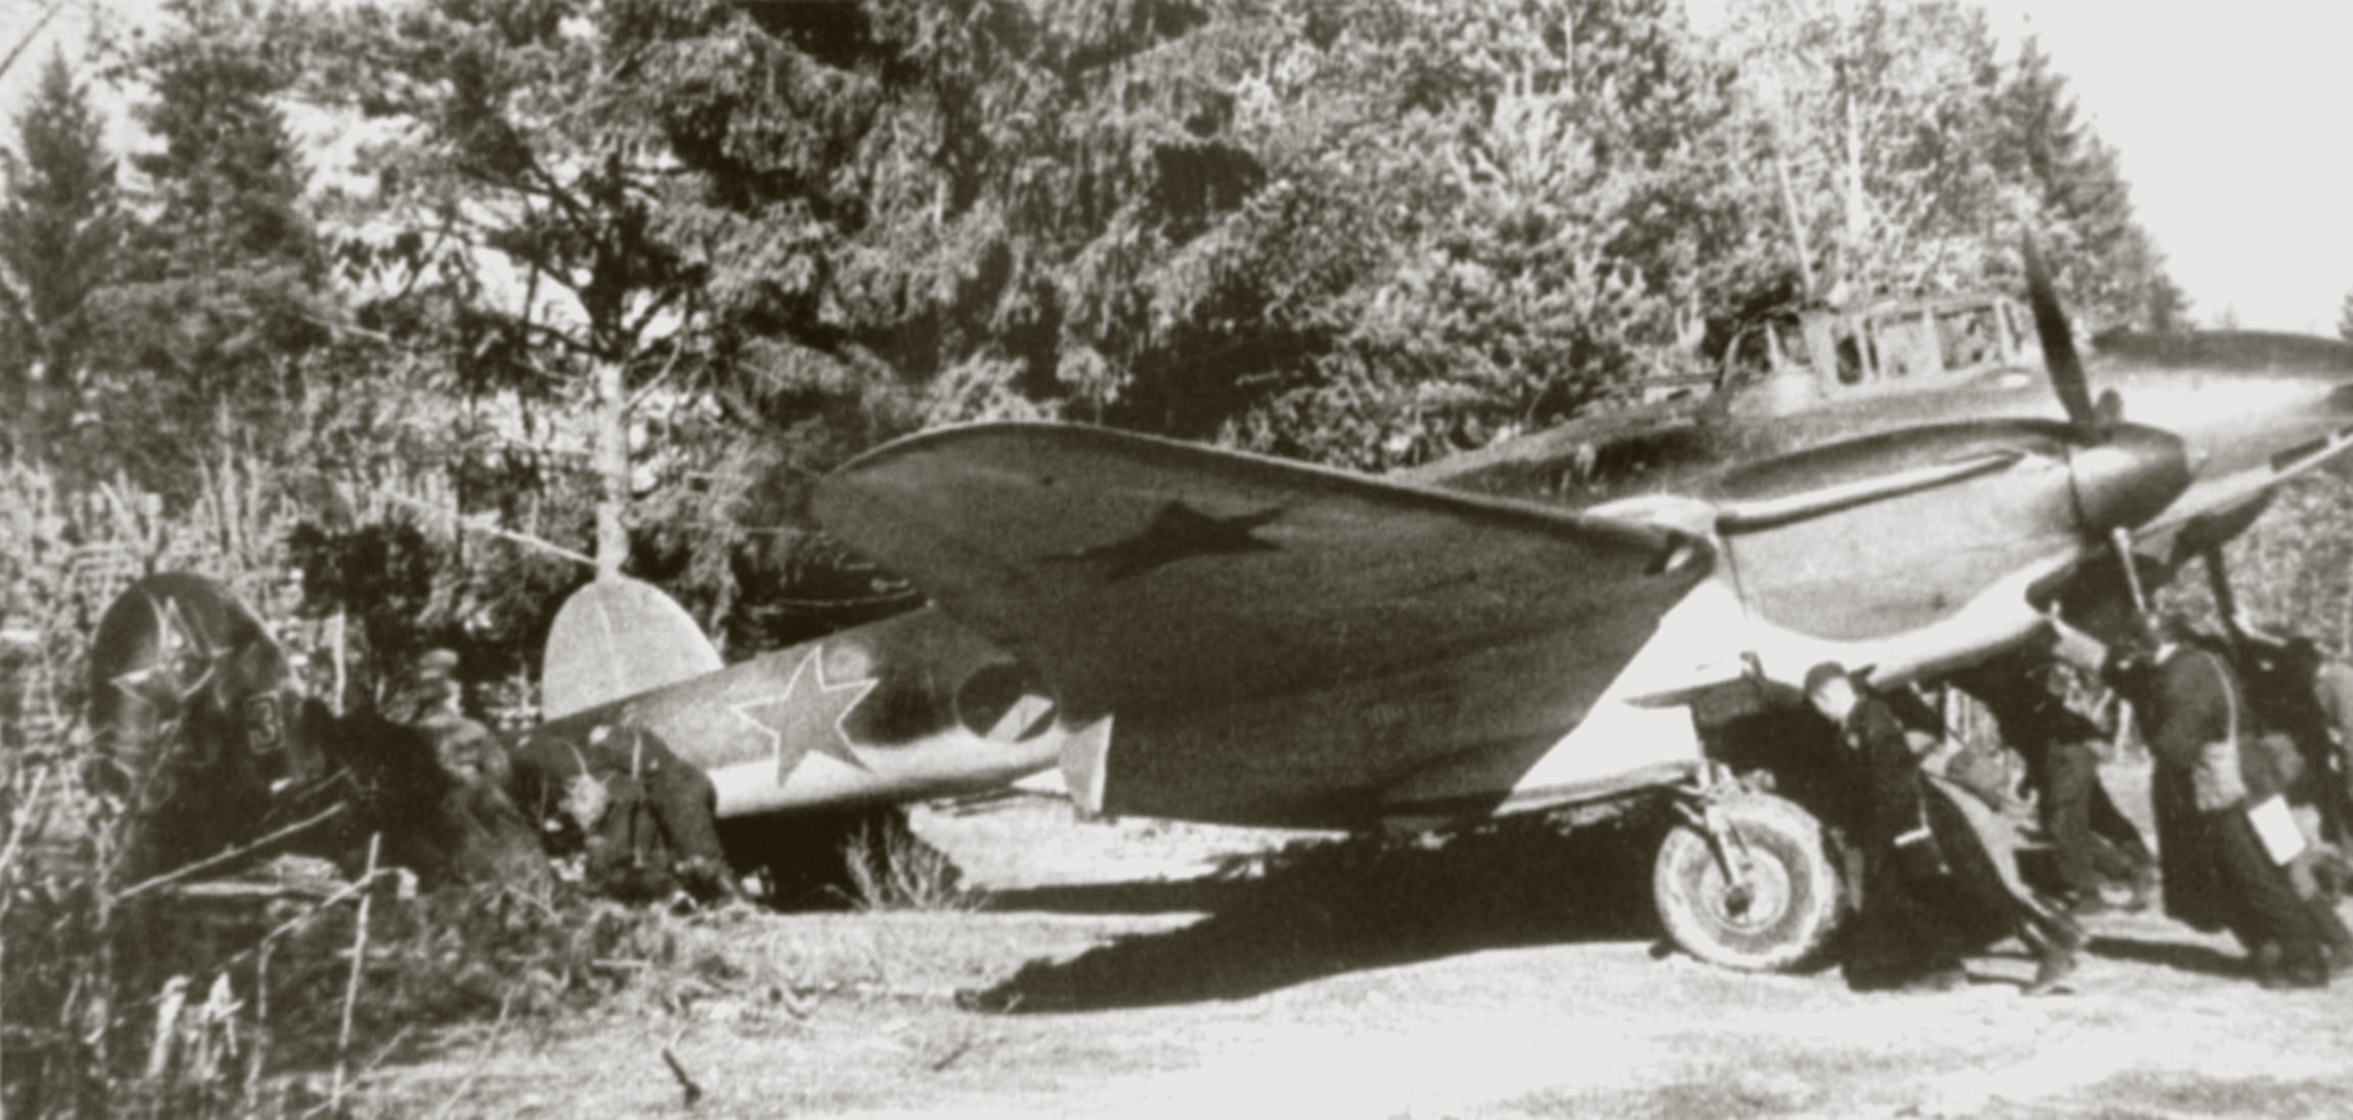 Petlyakov Pe 2 type 110 Red 3 being pushed back into forest cover Russia SS1181 P20